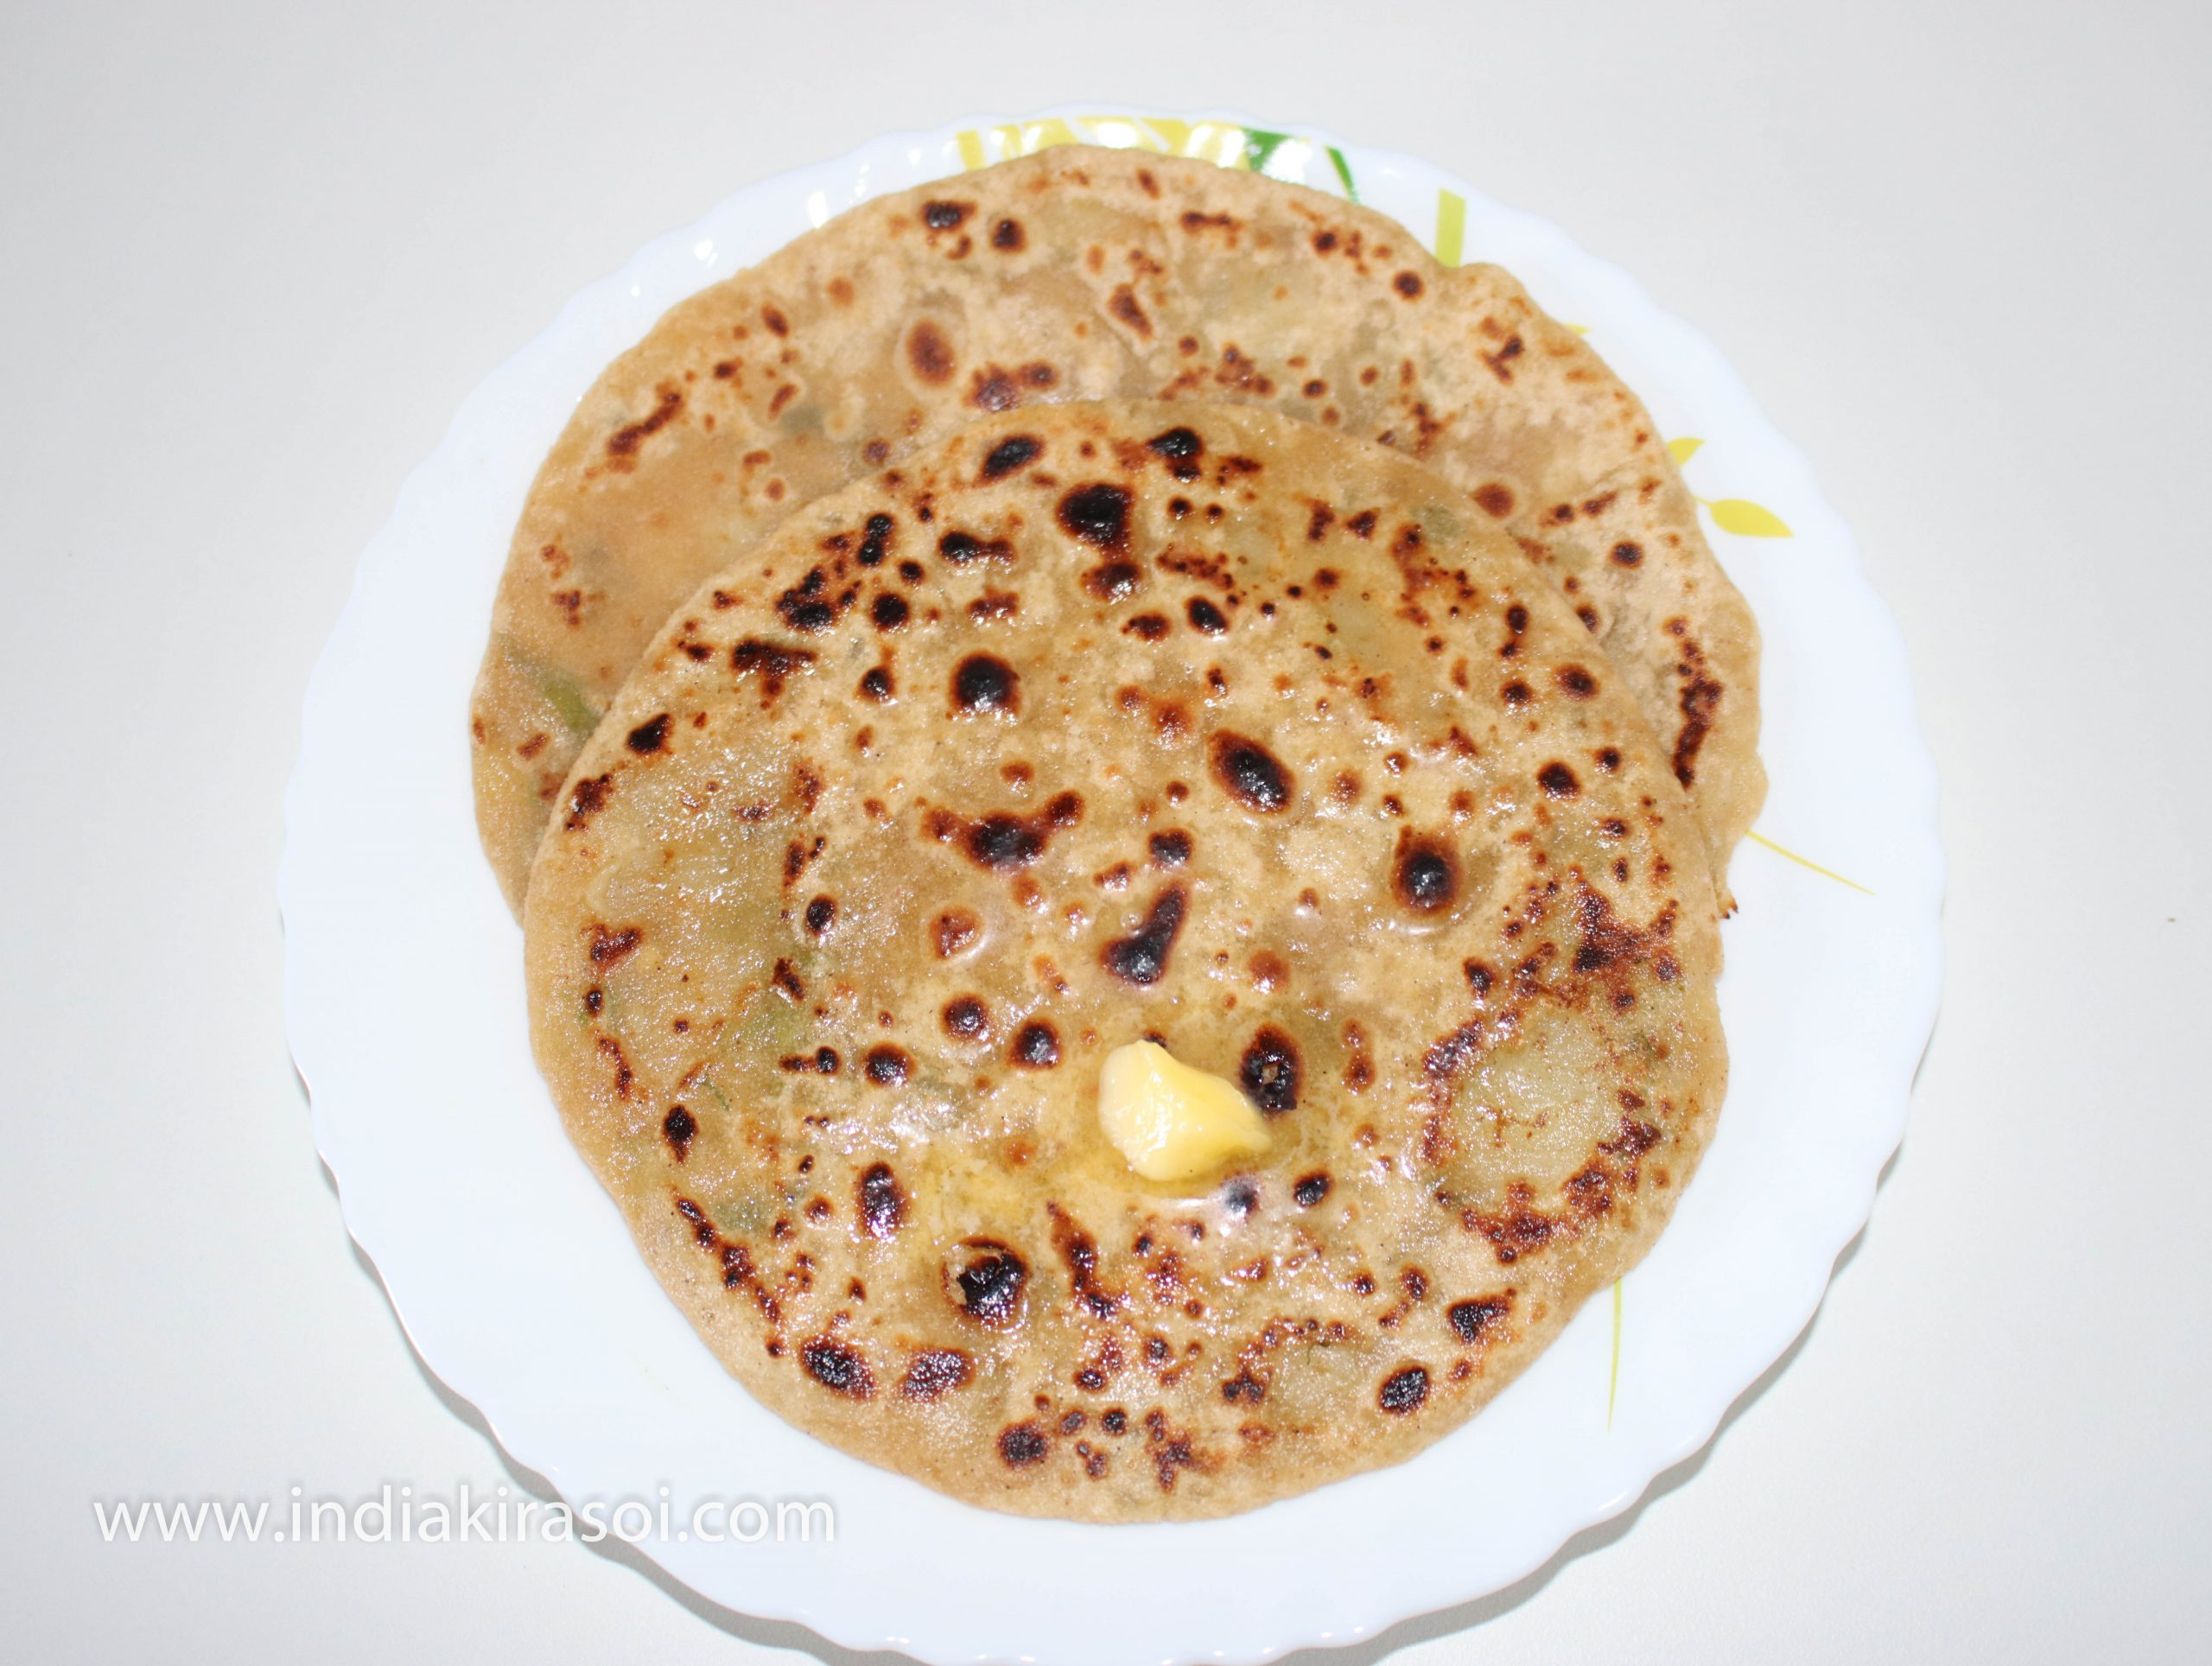 Now flatbread/ paratha is ready, You can serve it with green chutney or curd and pickle.